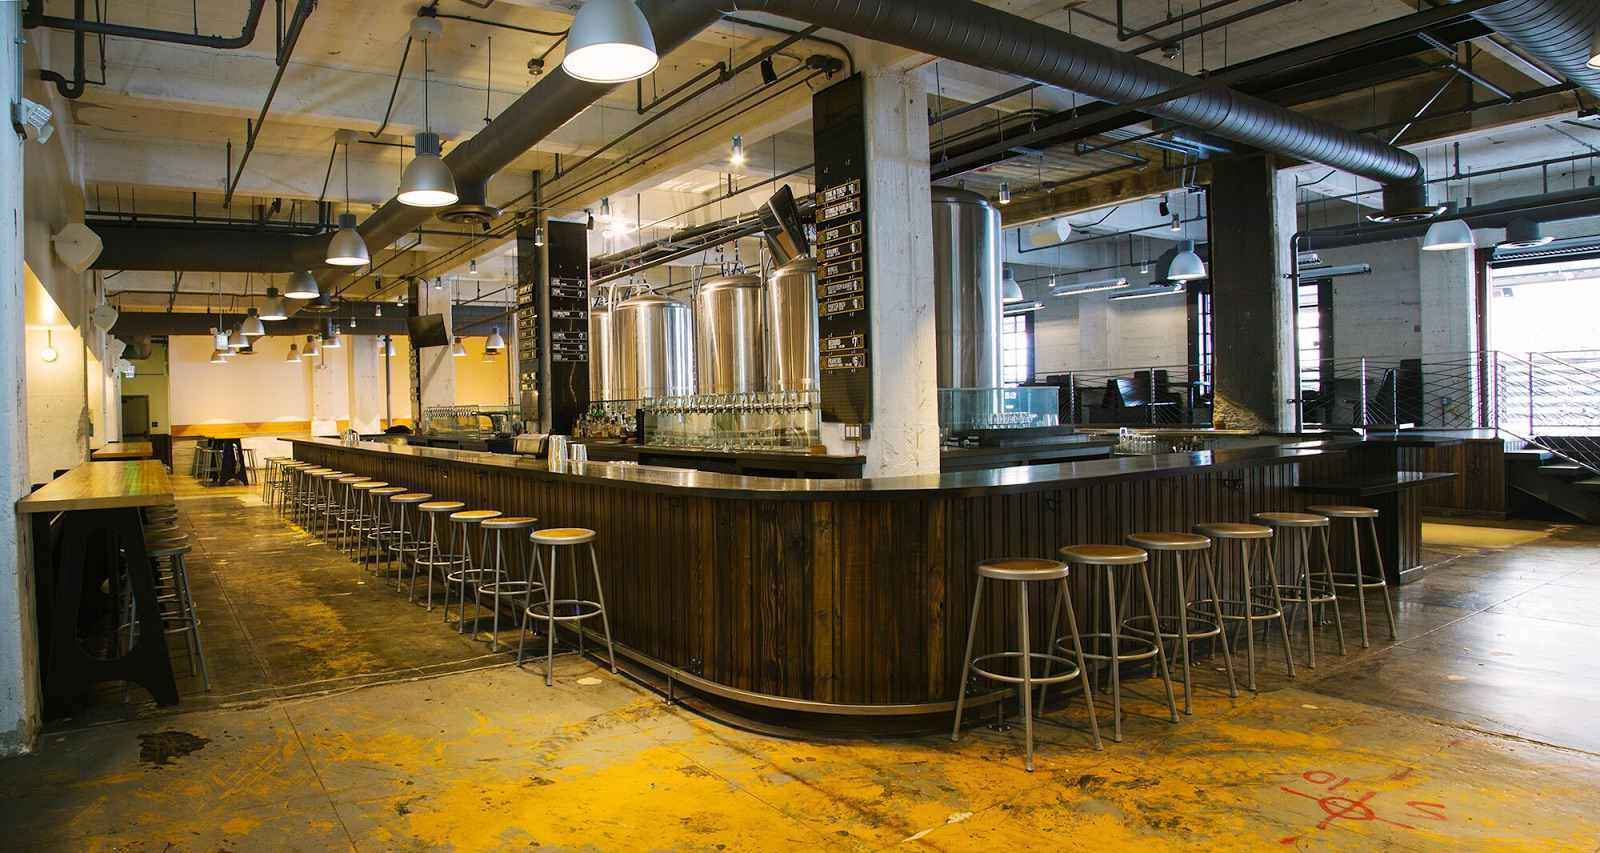 The Best Brewery Tours in Los Angeles